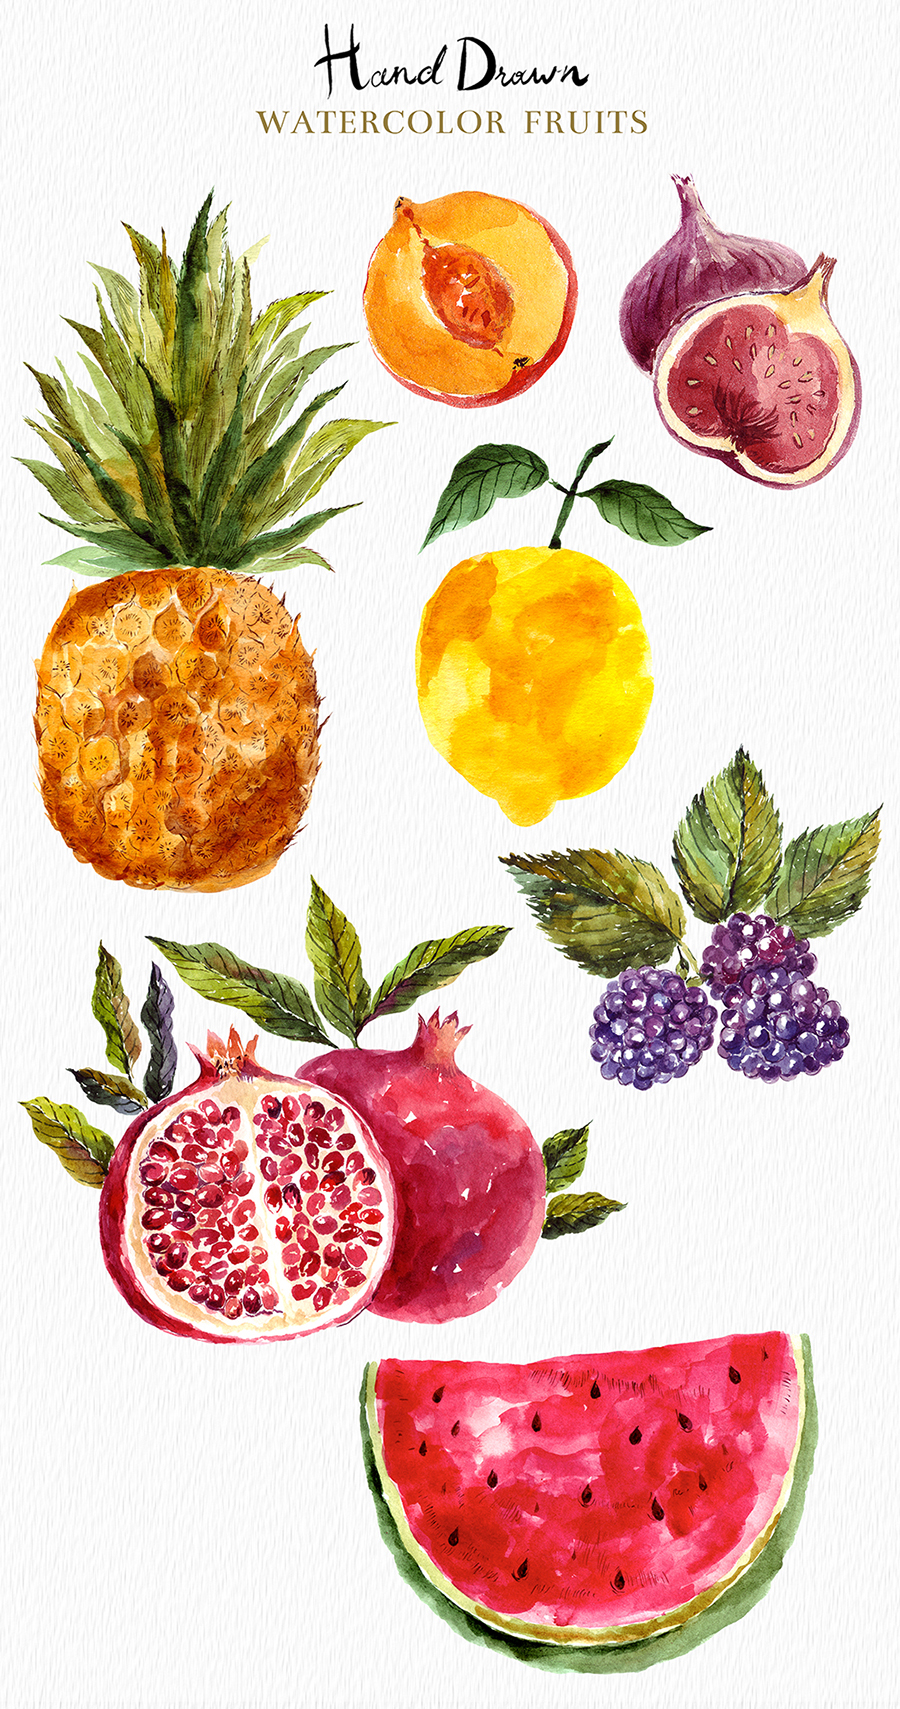 Watercolor vegetables & fruits example image 3